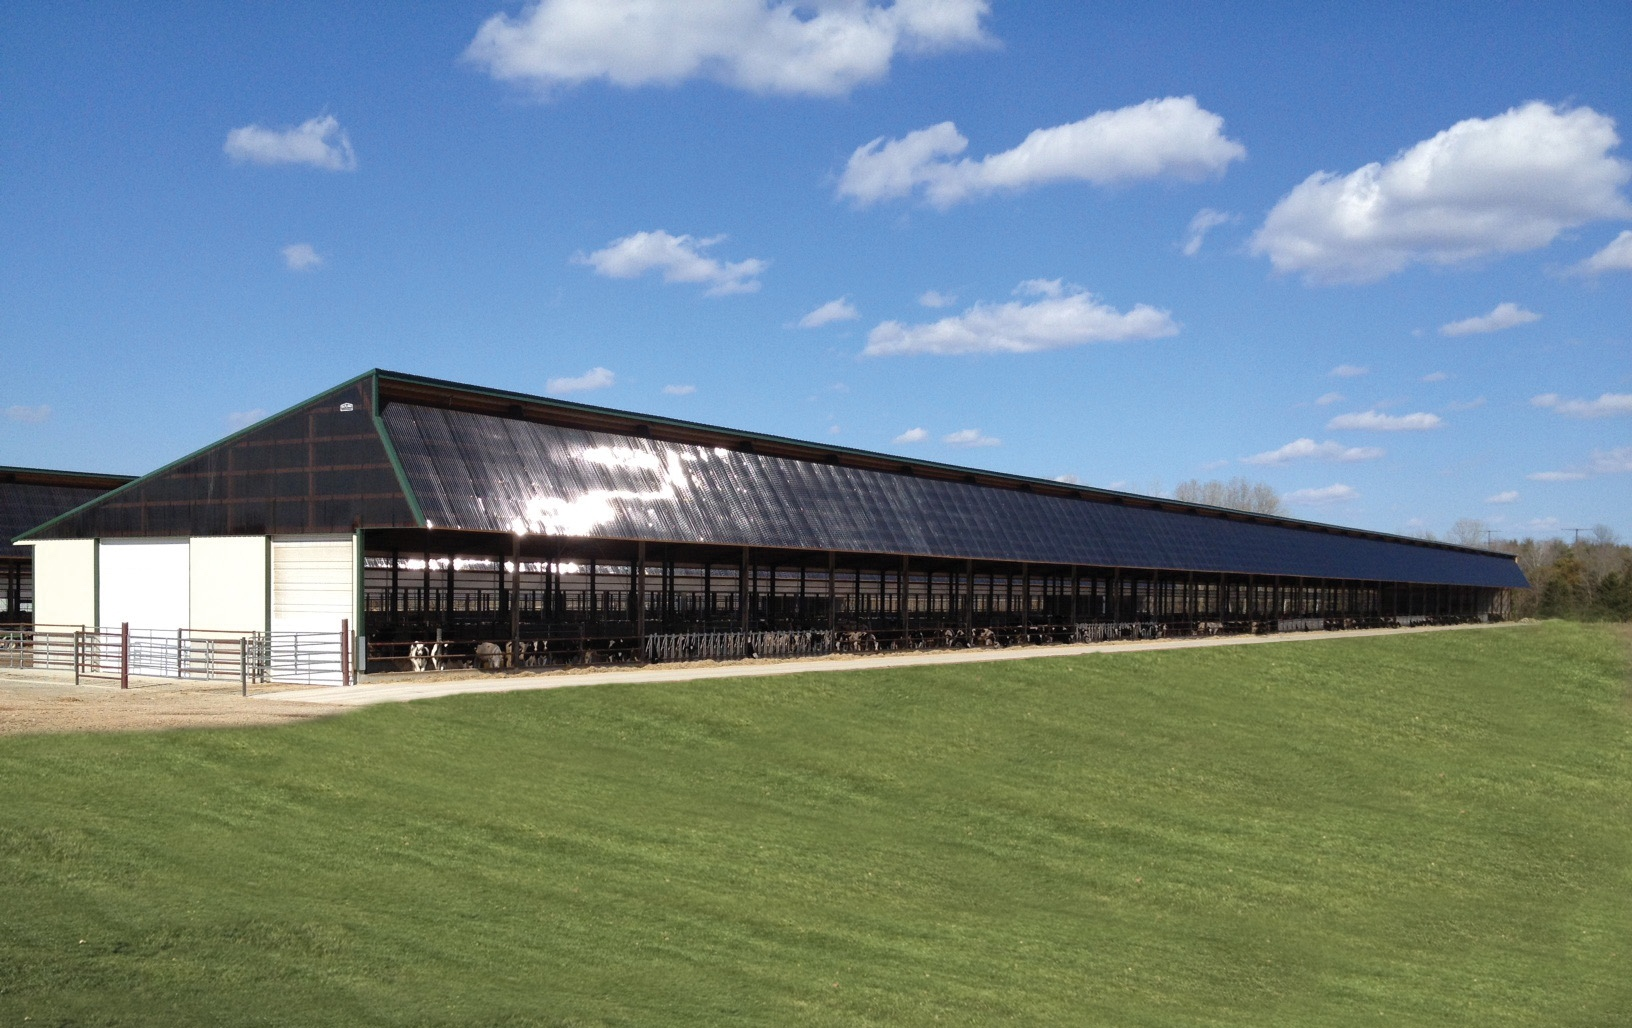 JACOB BROTHERS CALF FACILITY - CECIL, WI